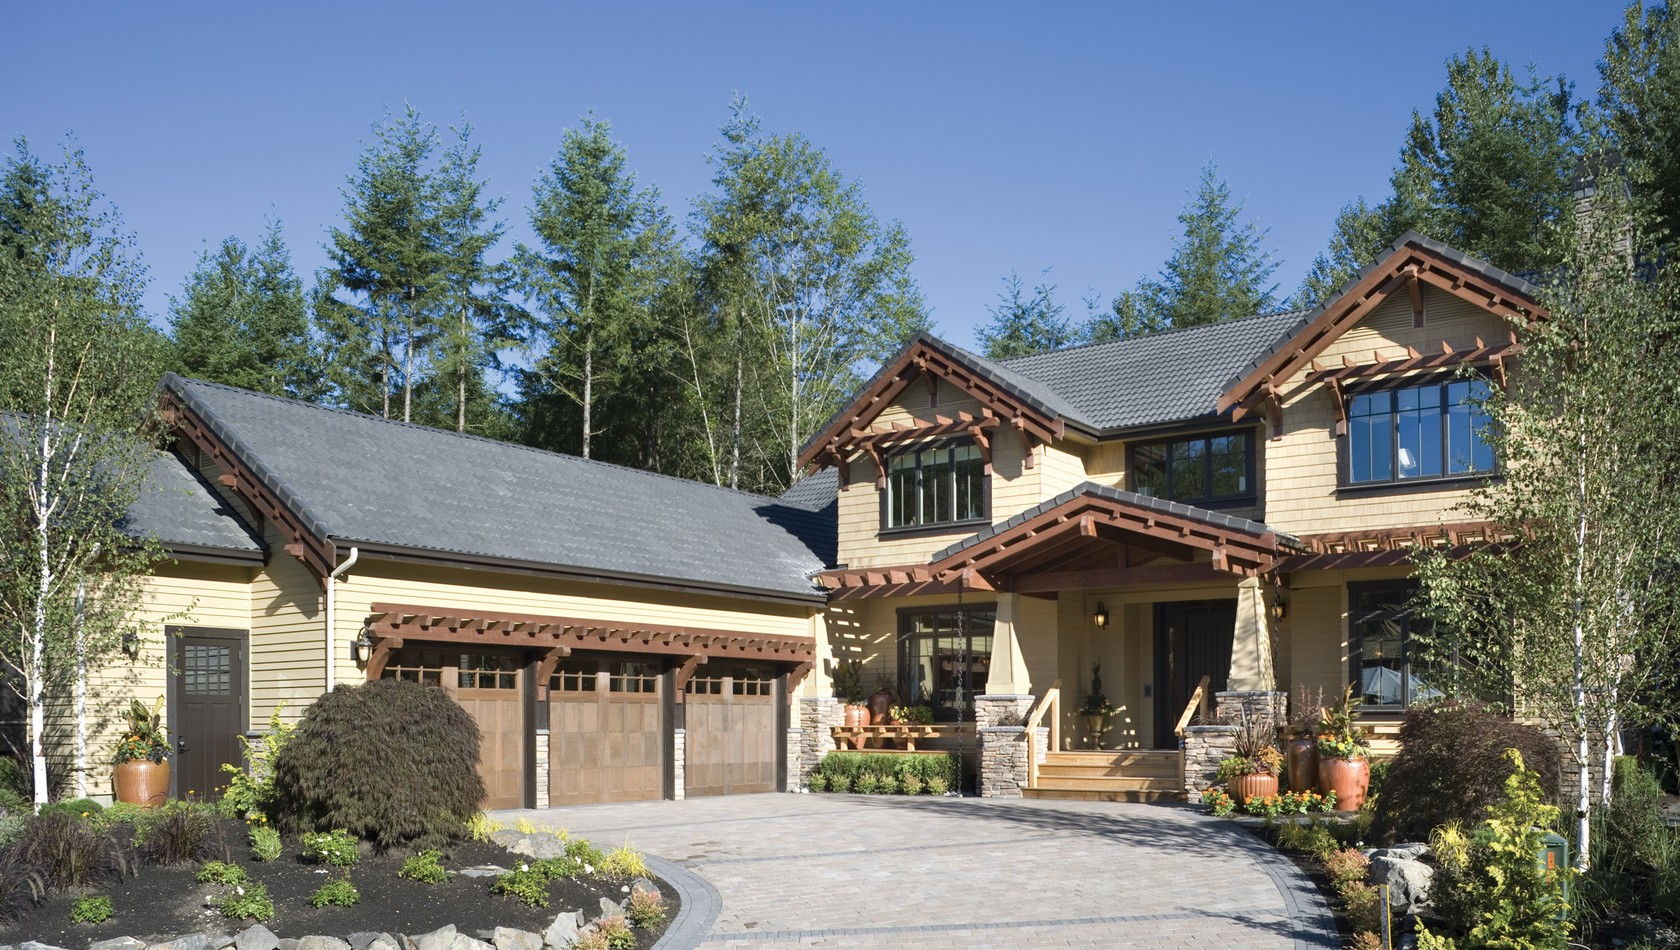 Main image for house plan 2458: The Copper Falls